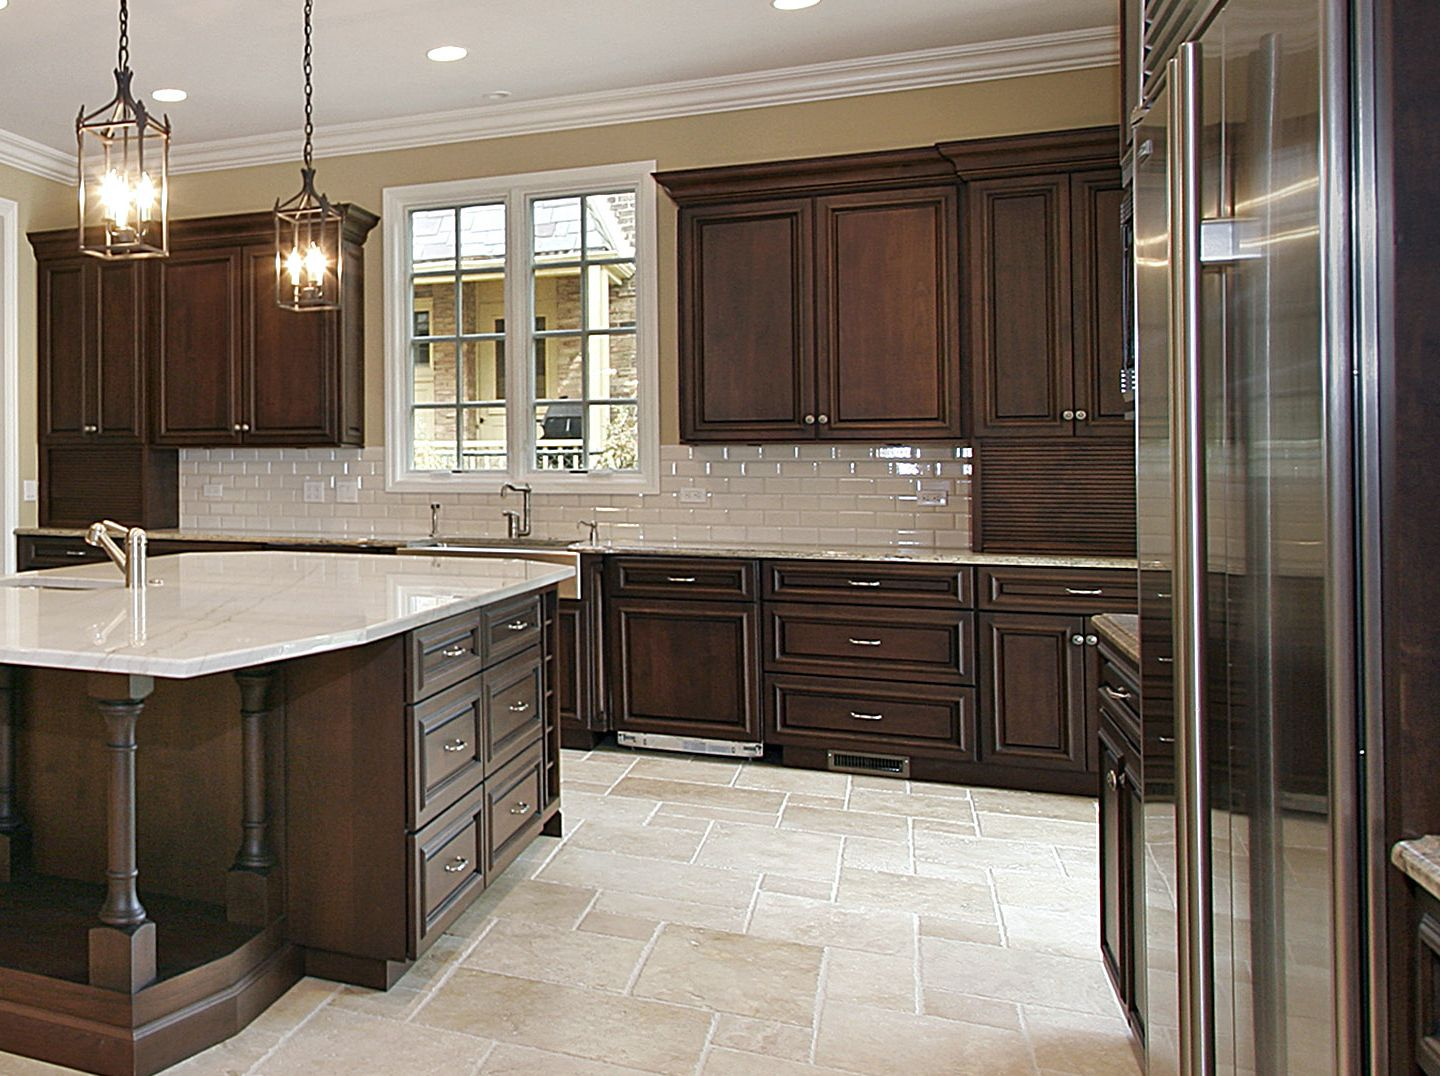 Classic dark cherry kitchen with large island www for Kitchen cabinets and countertops ideas